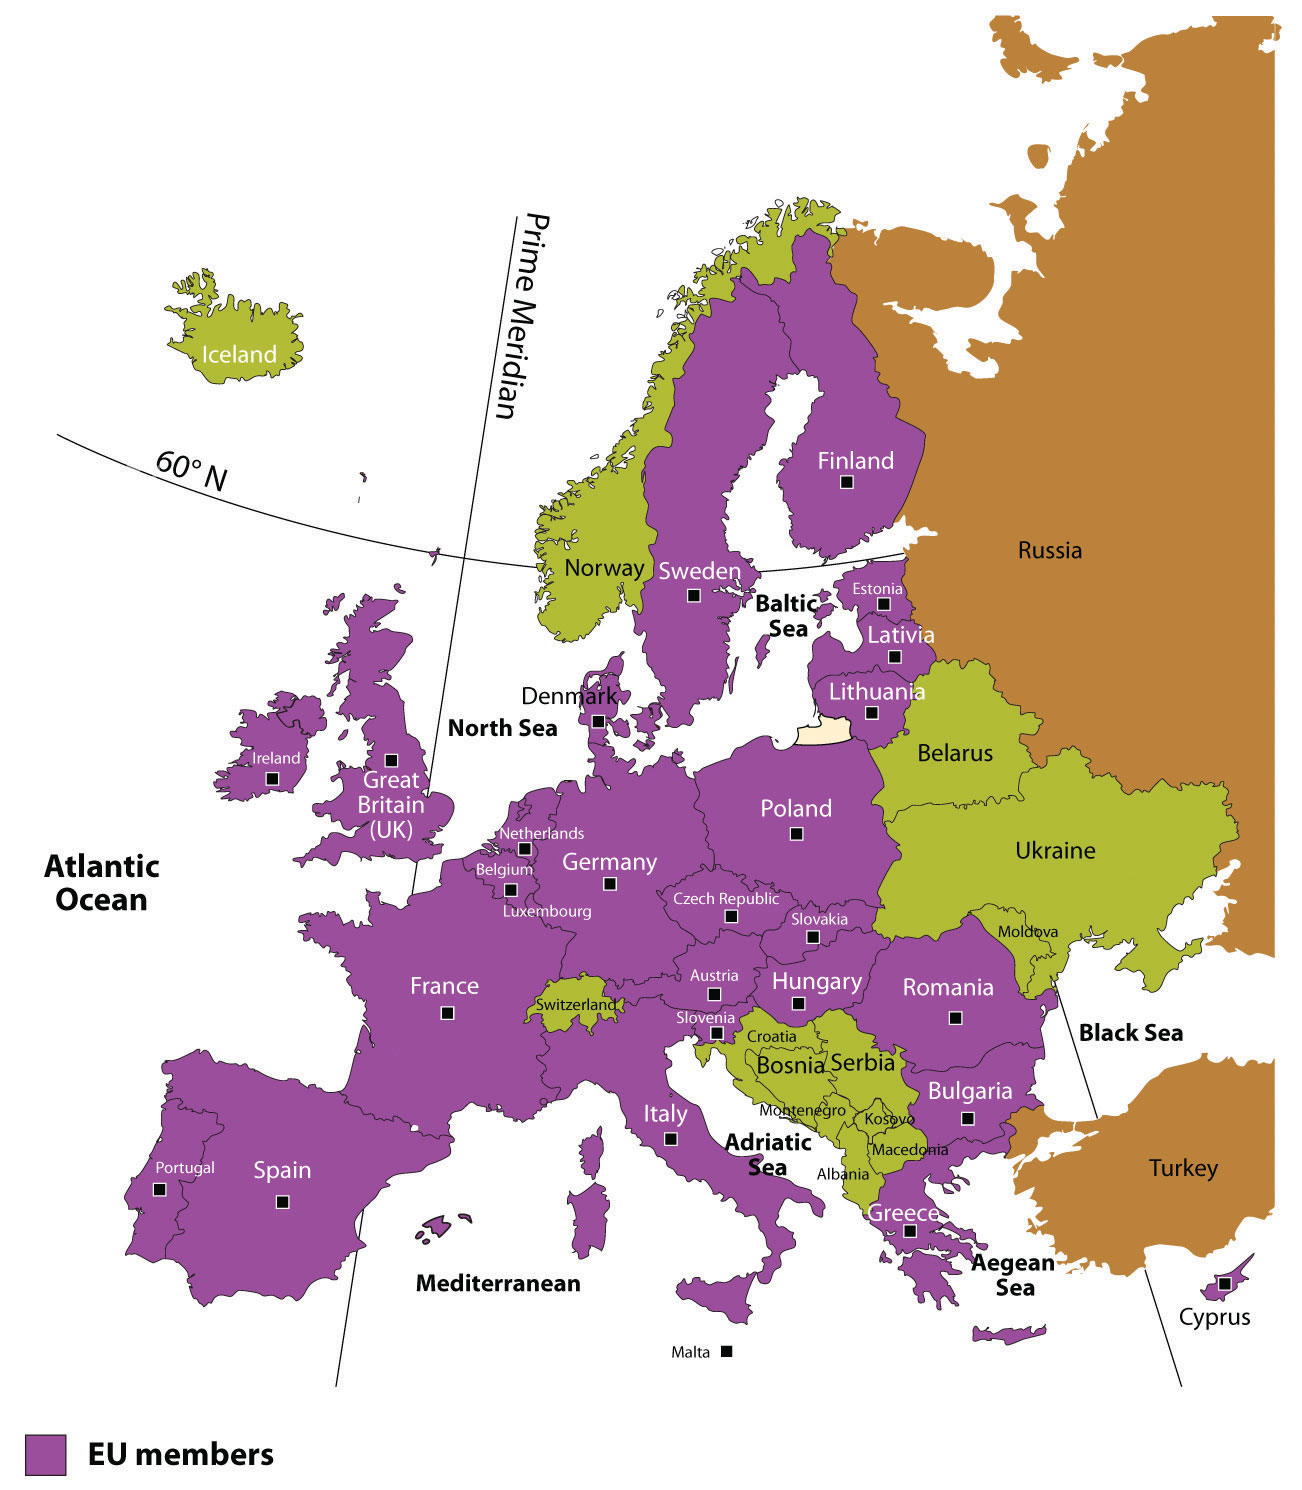 Europe's Amazing Rise: Foretold in Bible Prophecy